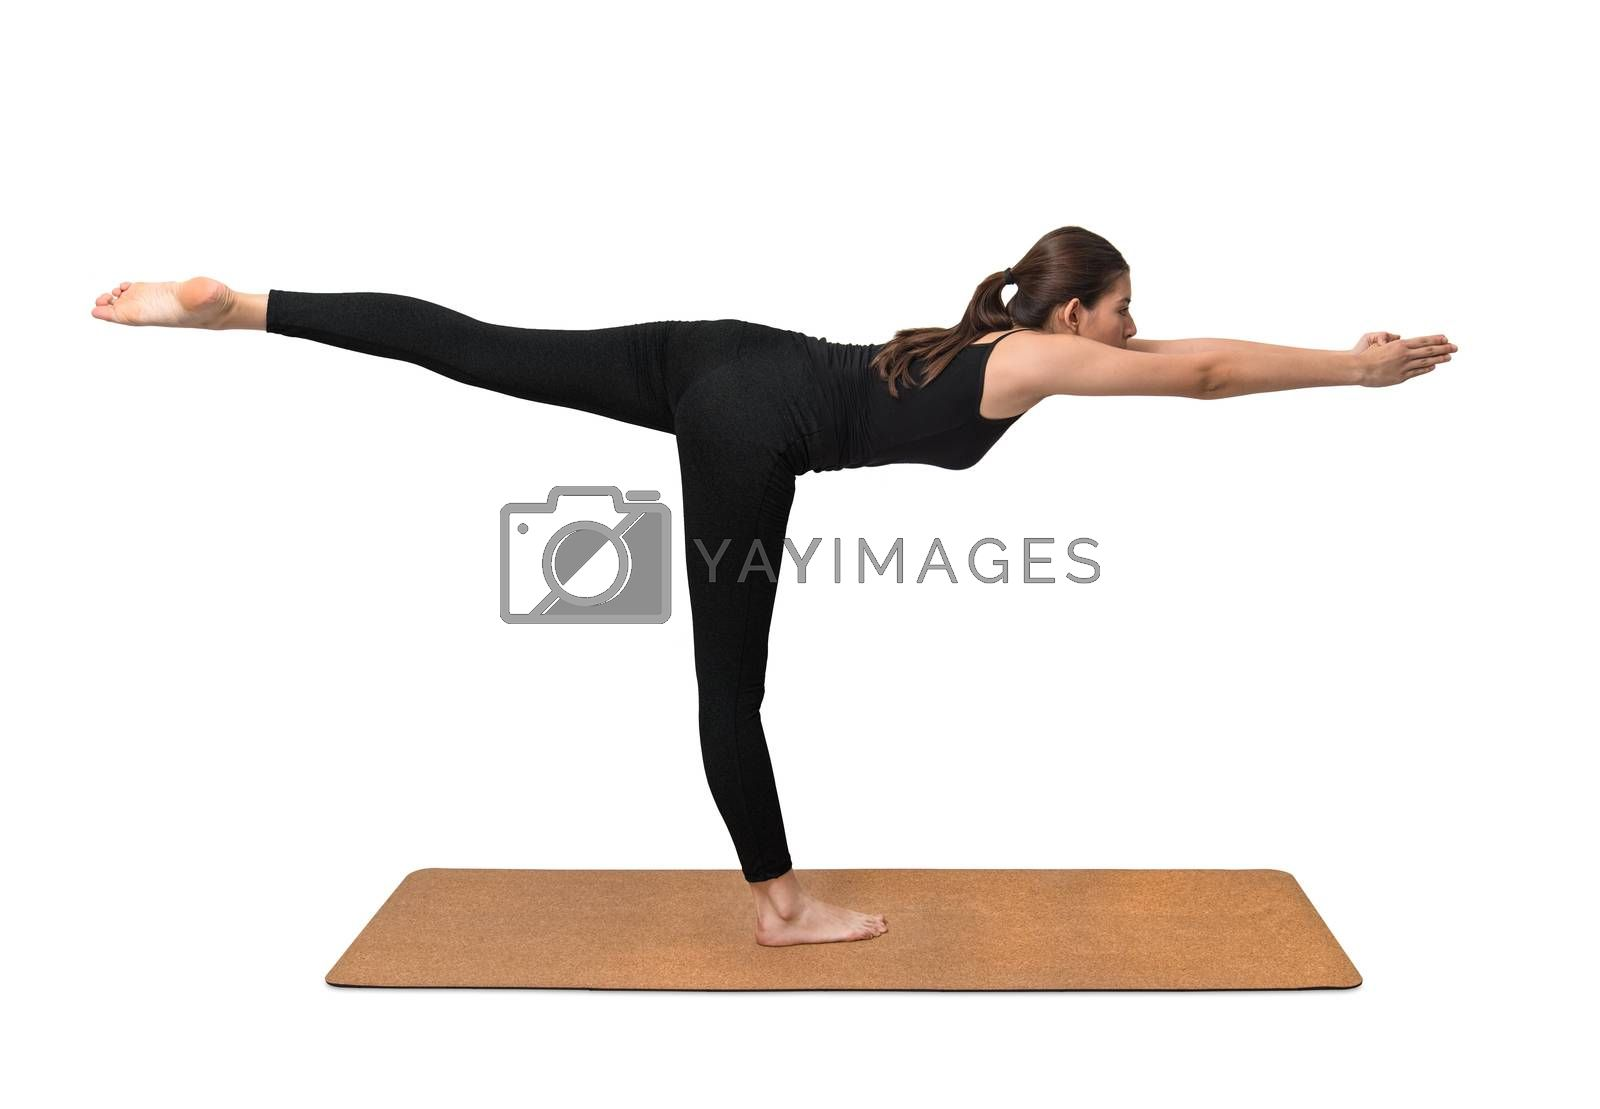 Yoga exercise, young woman pose on yoga mat by praethip